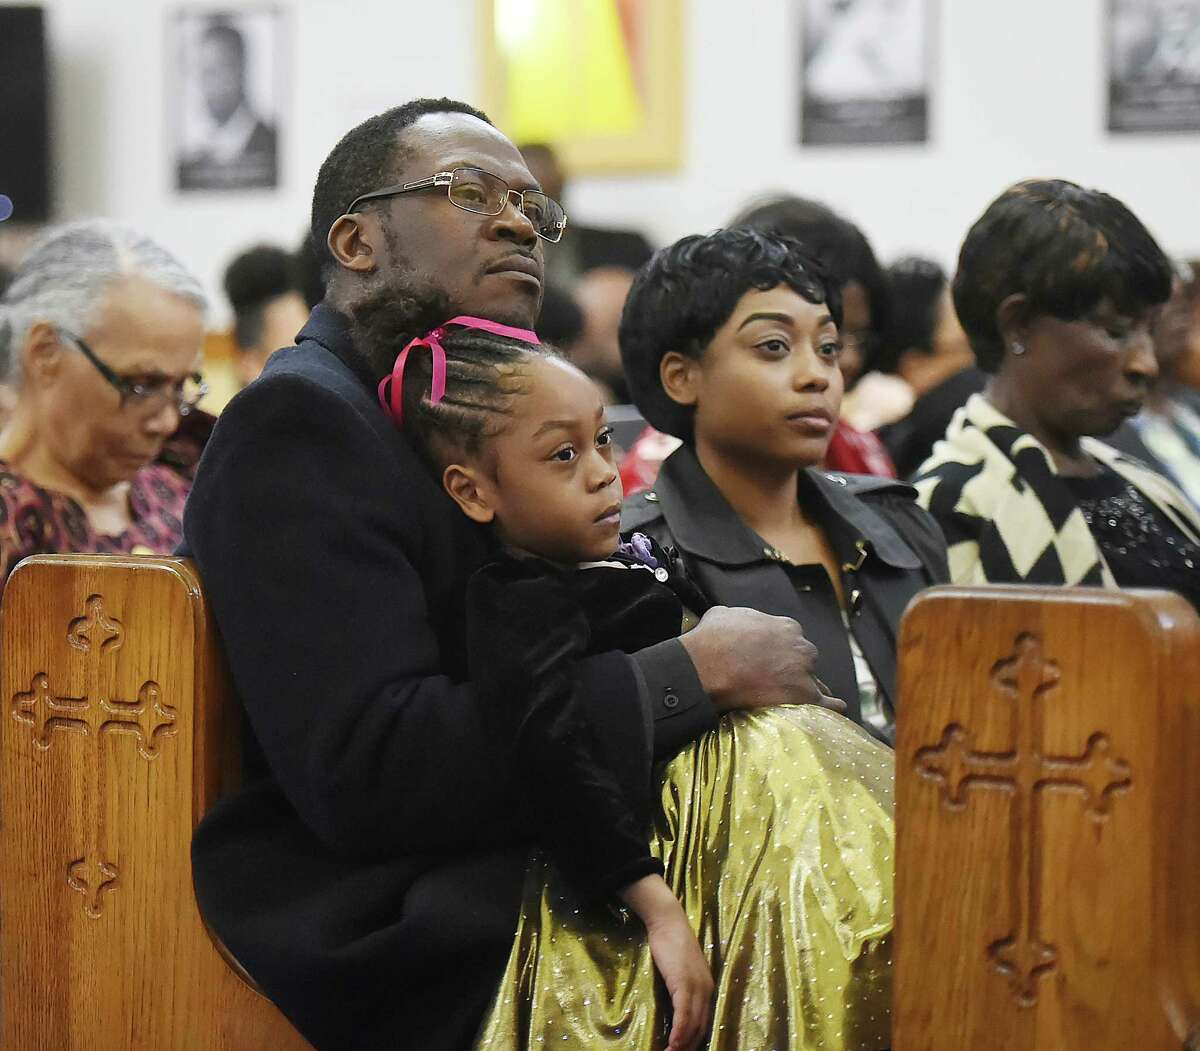 The Black History celebration, Satuday, March 3, 2018, at Mount Zion Seventh-day Adventist Church at 64 Marlboro St. in Hamden.